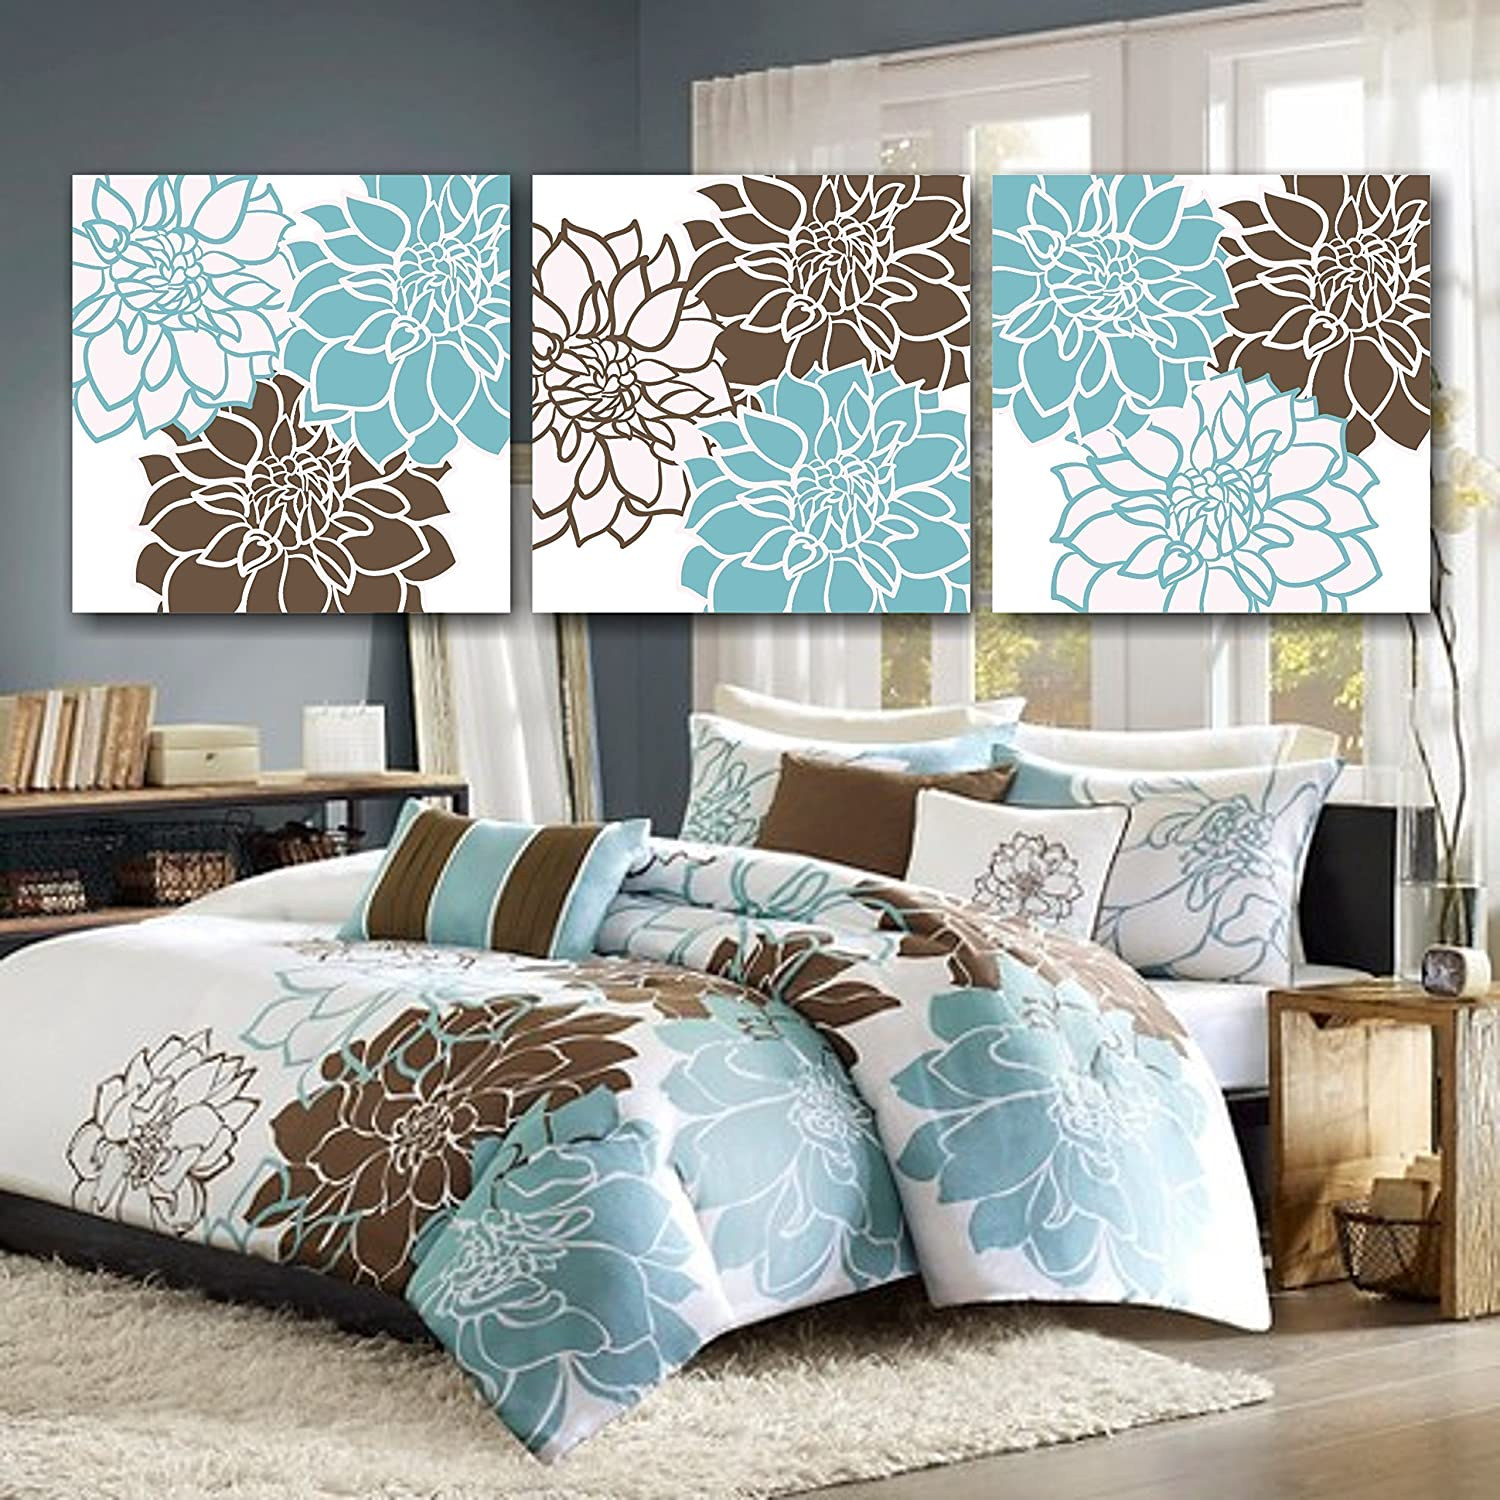 Teal And Brown Bedroom Amazoncom Teal Brown Bedroom Wall Artblue Brown Floral Wall Art